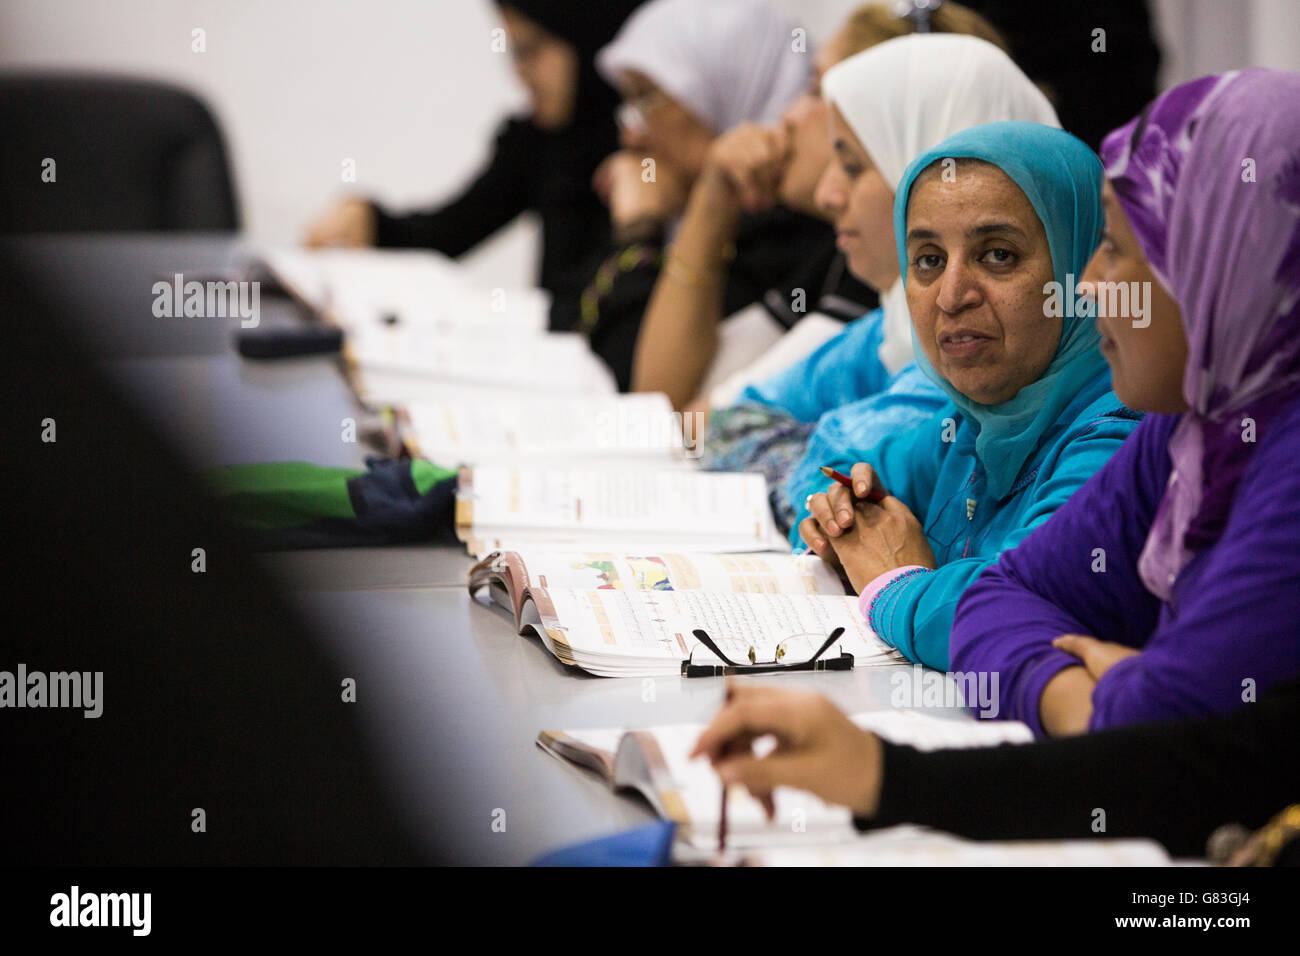 Women attend an evening functional adult literacy course in Agadir, Morocco. - Stock Image